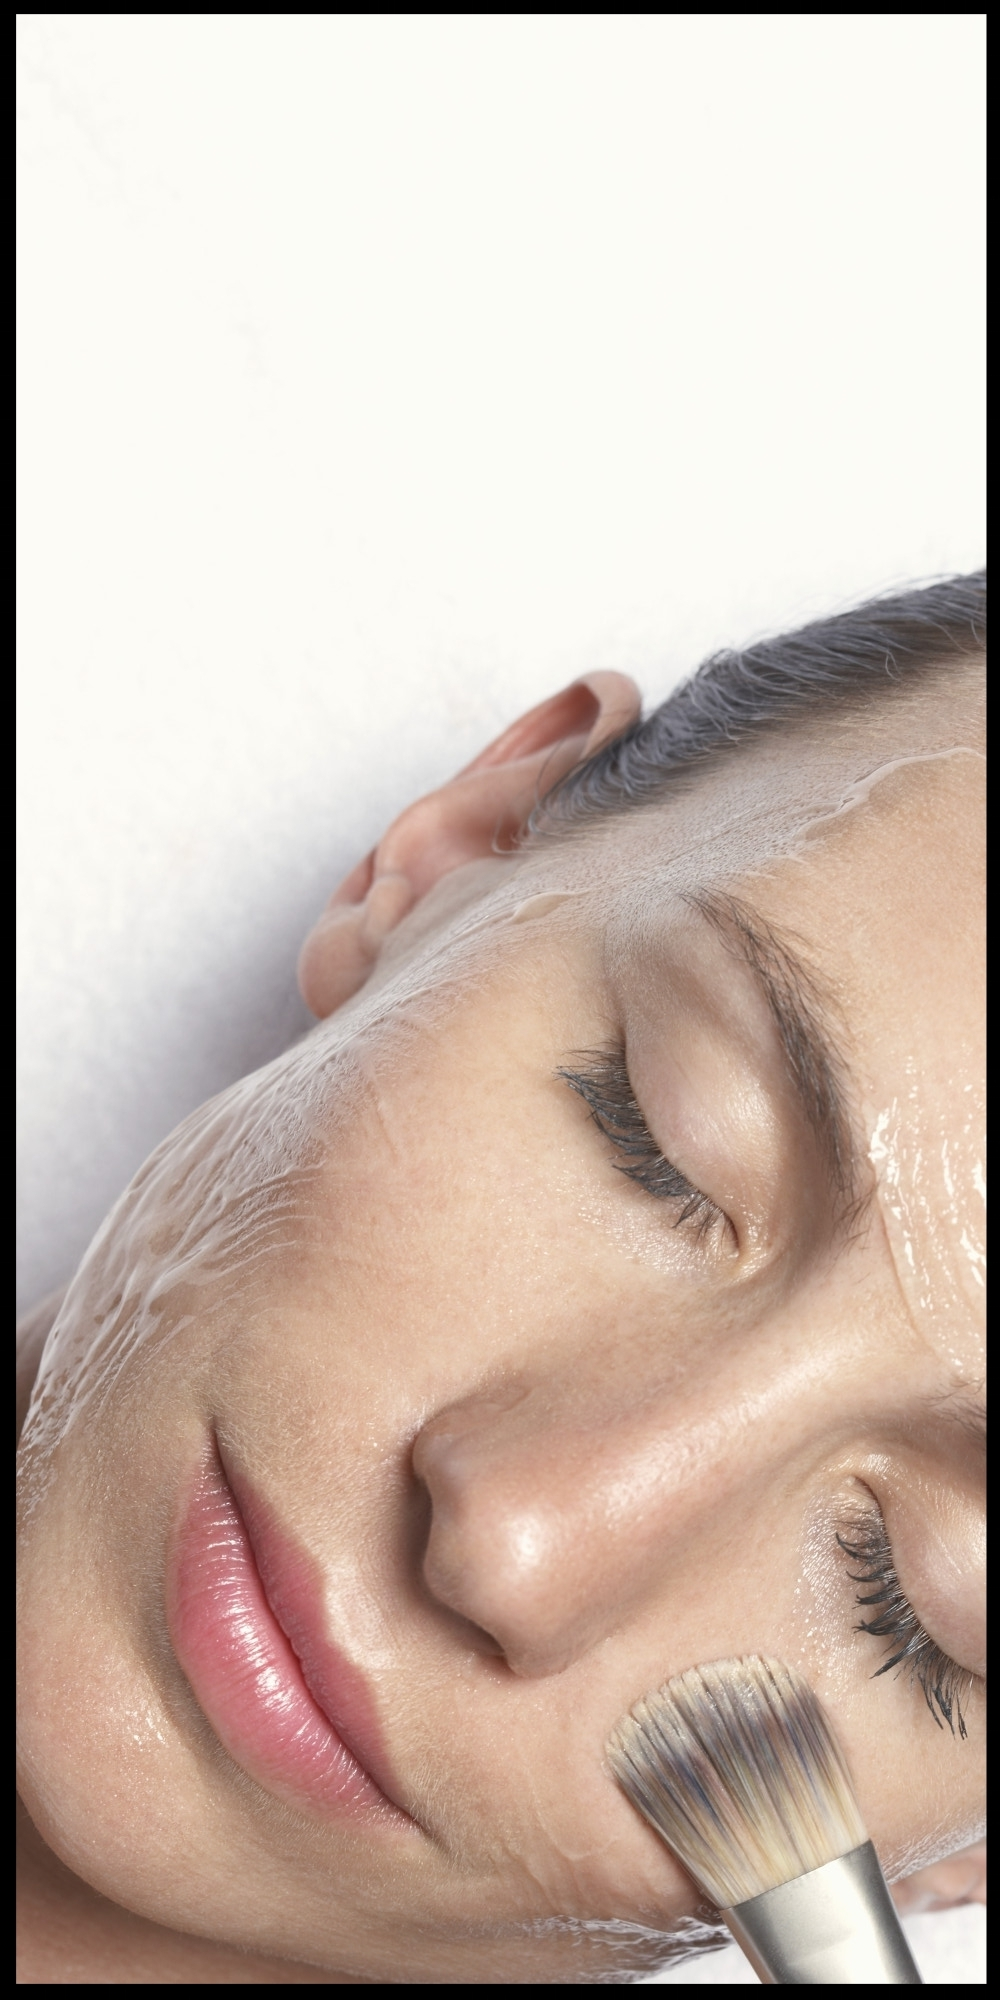 Resurfacing Treatments - Recommended for those with dull or uneven skin tone, acne or acne scarring, congested pores, wrinkles or loss of firmness; Image resurfacing treatments use natural and therapeutic acids to rejuvenate your skin.You, along with your Aesthetician, will choose between five different treatments specifically targeted for your skin type and skincare goals.Level I : $95 Level II : $115Organic Ormedic Lift:A blend of pumpkin, pineapple, papaya, and mango fruit enzymes and peptides in an organic aloe-vera gel base. This non-chemical peel re-balances, regenerates, and restores skin while comfrey plant derived stem cell technology recharge your skin's stem cells helping to maintain youthfulness of skin.Signature Lift:This results-driven treatment combines vitamin C & hydroxy acids to speed up cellular renewal. Perfect for redness prone skin, you will see noticeable results in just one session.Lightening Lift:Uneven complexions have met their match. This results-driven treatment combines the most innovative and effective botanical brighteners luminescence and seashine with echinacea plant-derived stem cells and anti-aging peptides immediately leaving the skin younger looking and luminous.Wrinkle Lift:This ultra-resurfacing blend of glycolic acid & retinol visibly reduces the appearance of fine lines and wrinkles leaving skin firm and revitalized. Buddleja stem cells reduce irritation and diminish photo-aging, botanical coffee, and peppermint energize, while eucalyptus and ylang ylang purify the skin.Acne Lift:A potent blend of alpha and beta hydroxy acids blended with lilac plant-derived stem cells to reduce blemishes, redness, and diminish post-breakout dark spots. Detoxifying ylang ylang and eucalyptus purify oily skin and effectively treat and heal acne blemishes.Perfection Lift: This distinct blend of exfoliating agents, 5% lactic acid, 5% salicylic acid, and 5% resorcinol work synergistically to visibly reduce the appearance of fine lines, correct u